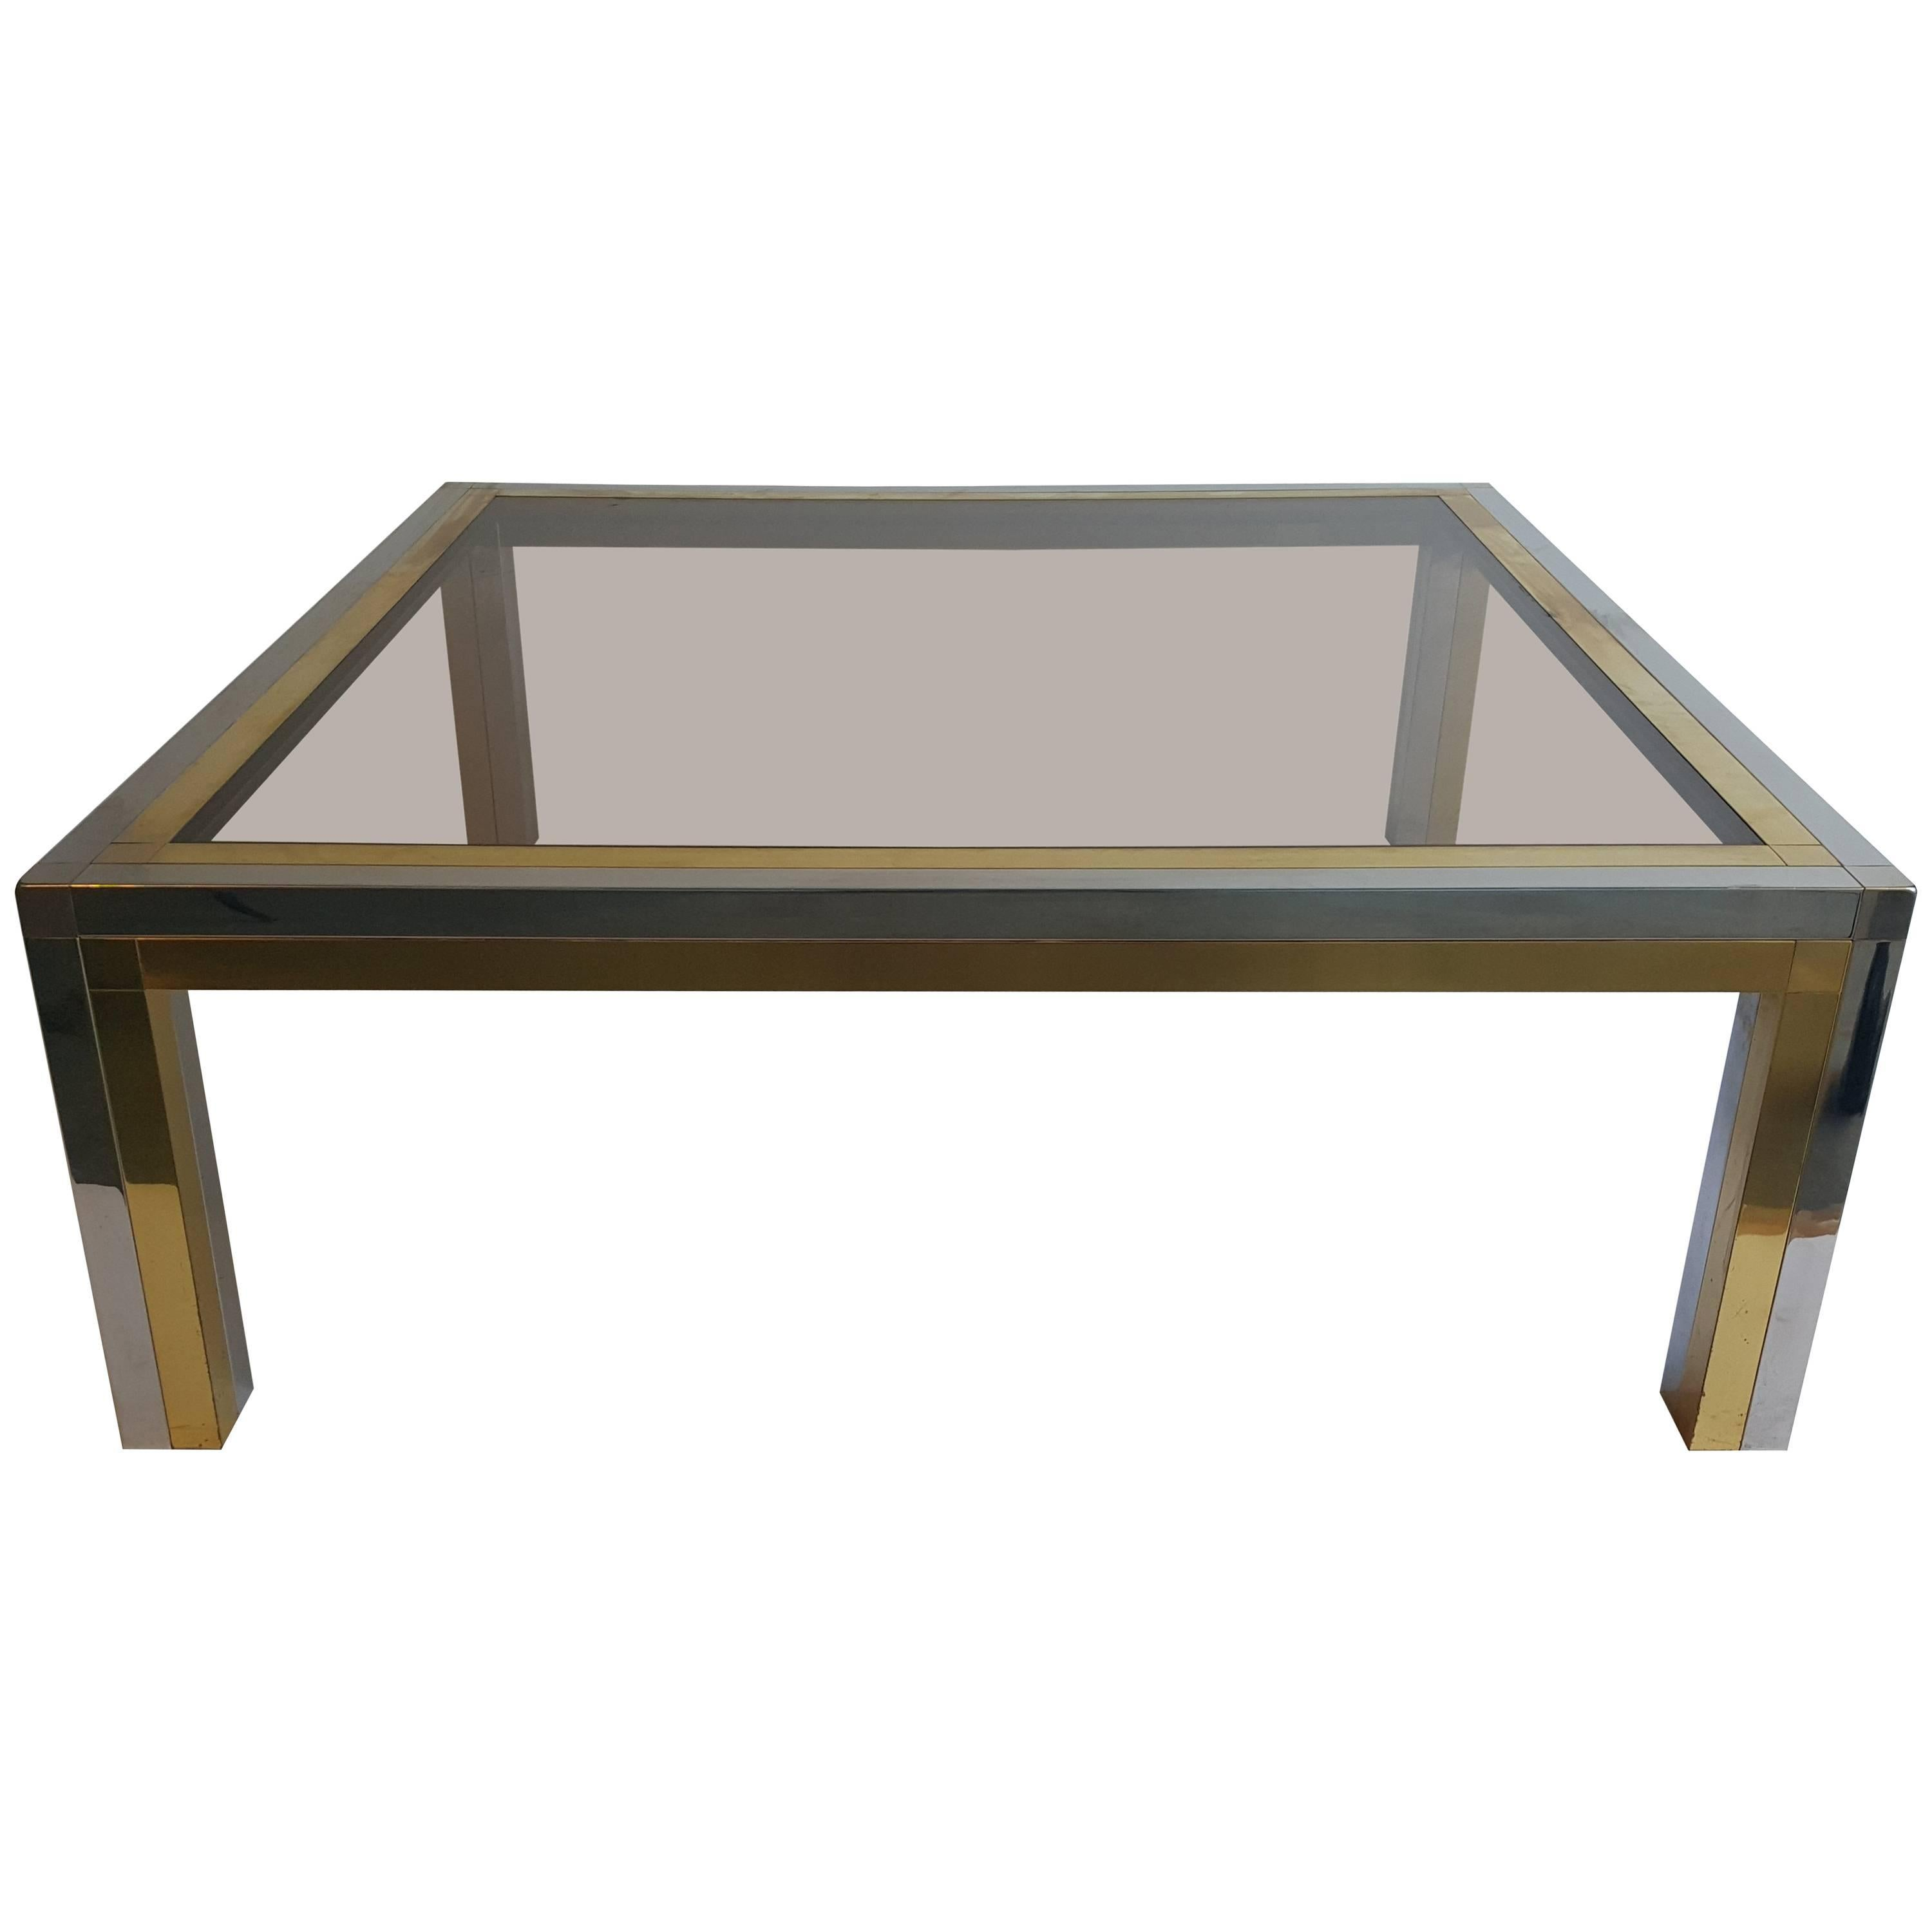 Brass And Chrome Coffee Table, Signed By Jean Charles For